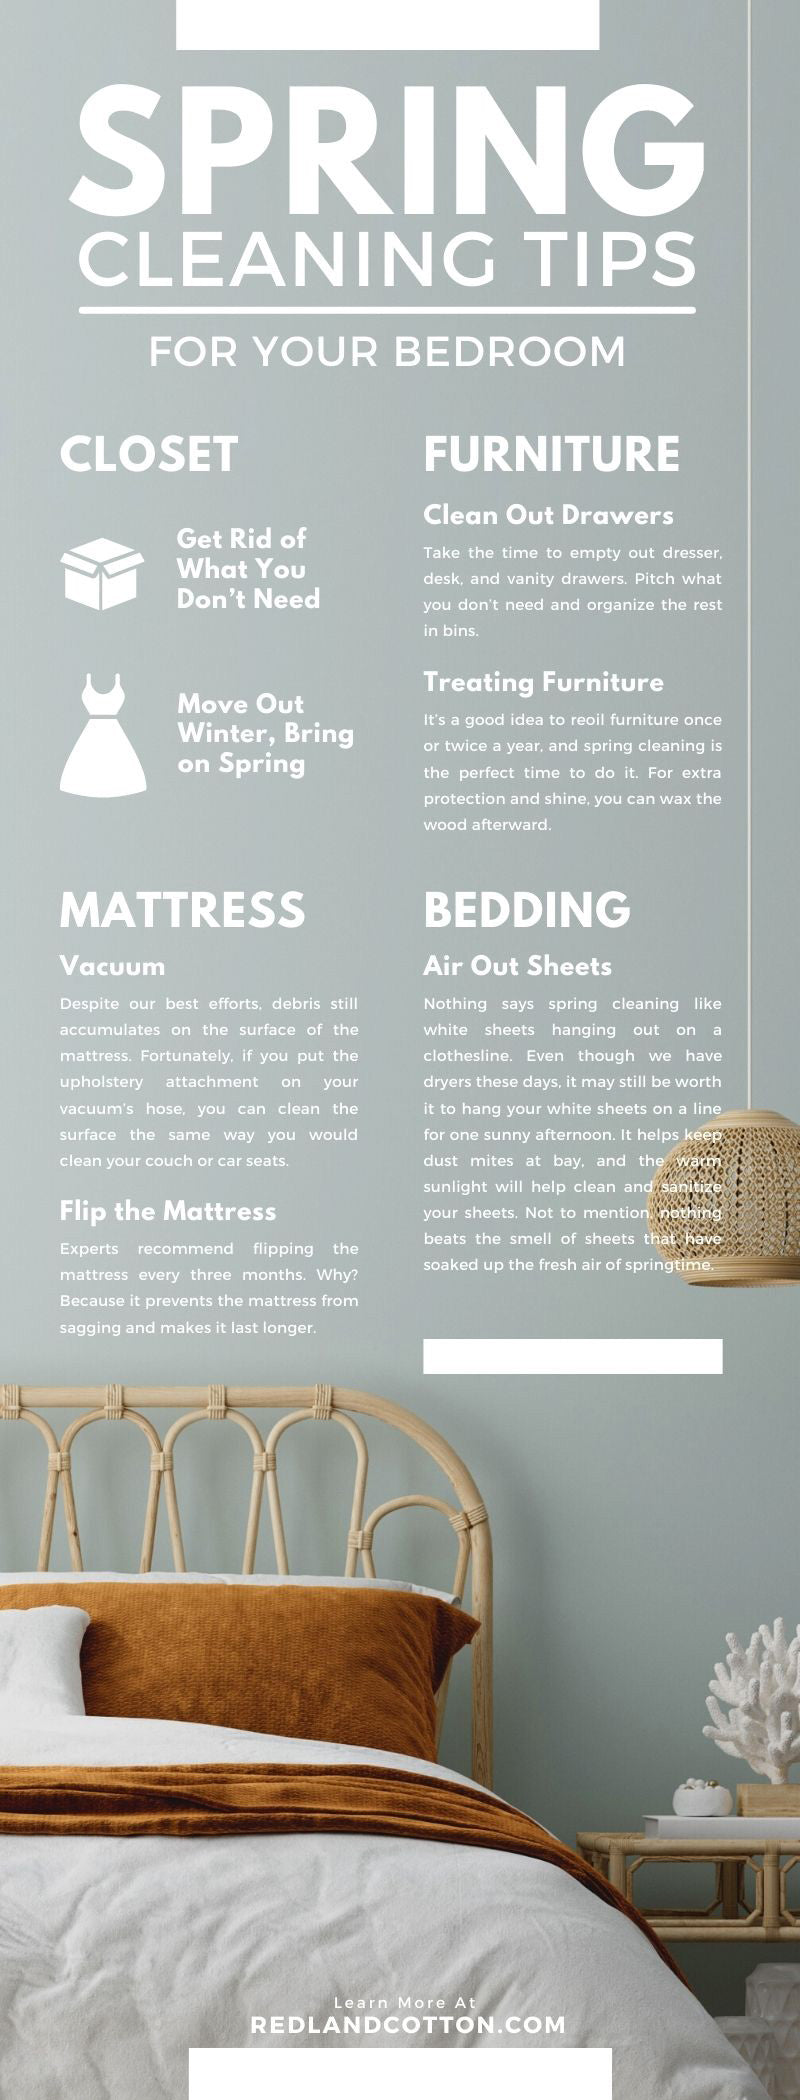 Spring Cleaning Tips for Your Bedroom